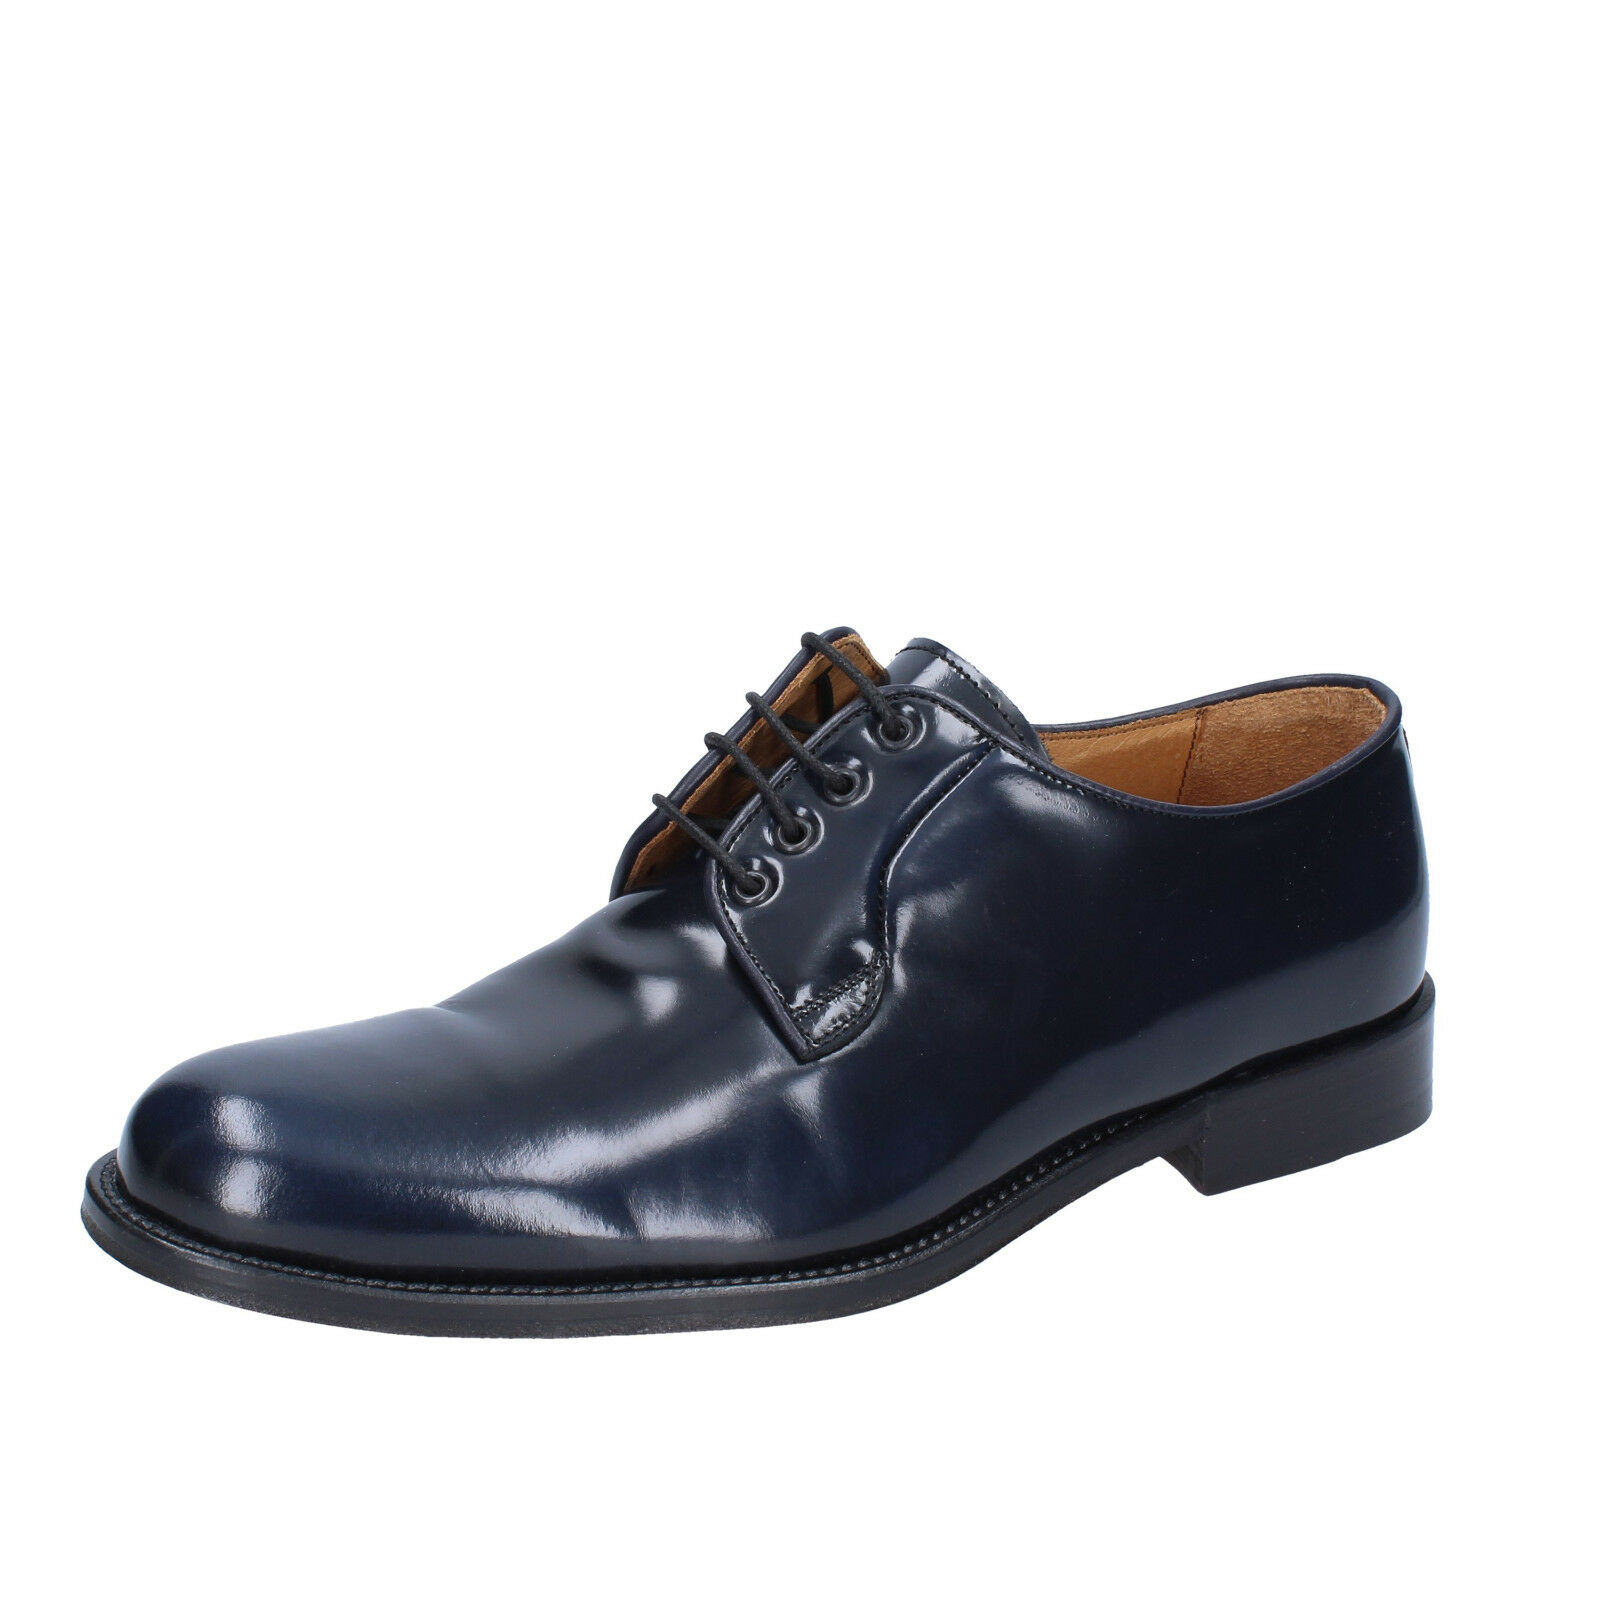 Mens shoes ALEXANDER 6 (EU 40) elegant bluee shiny leather BS207-40